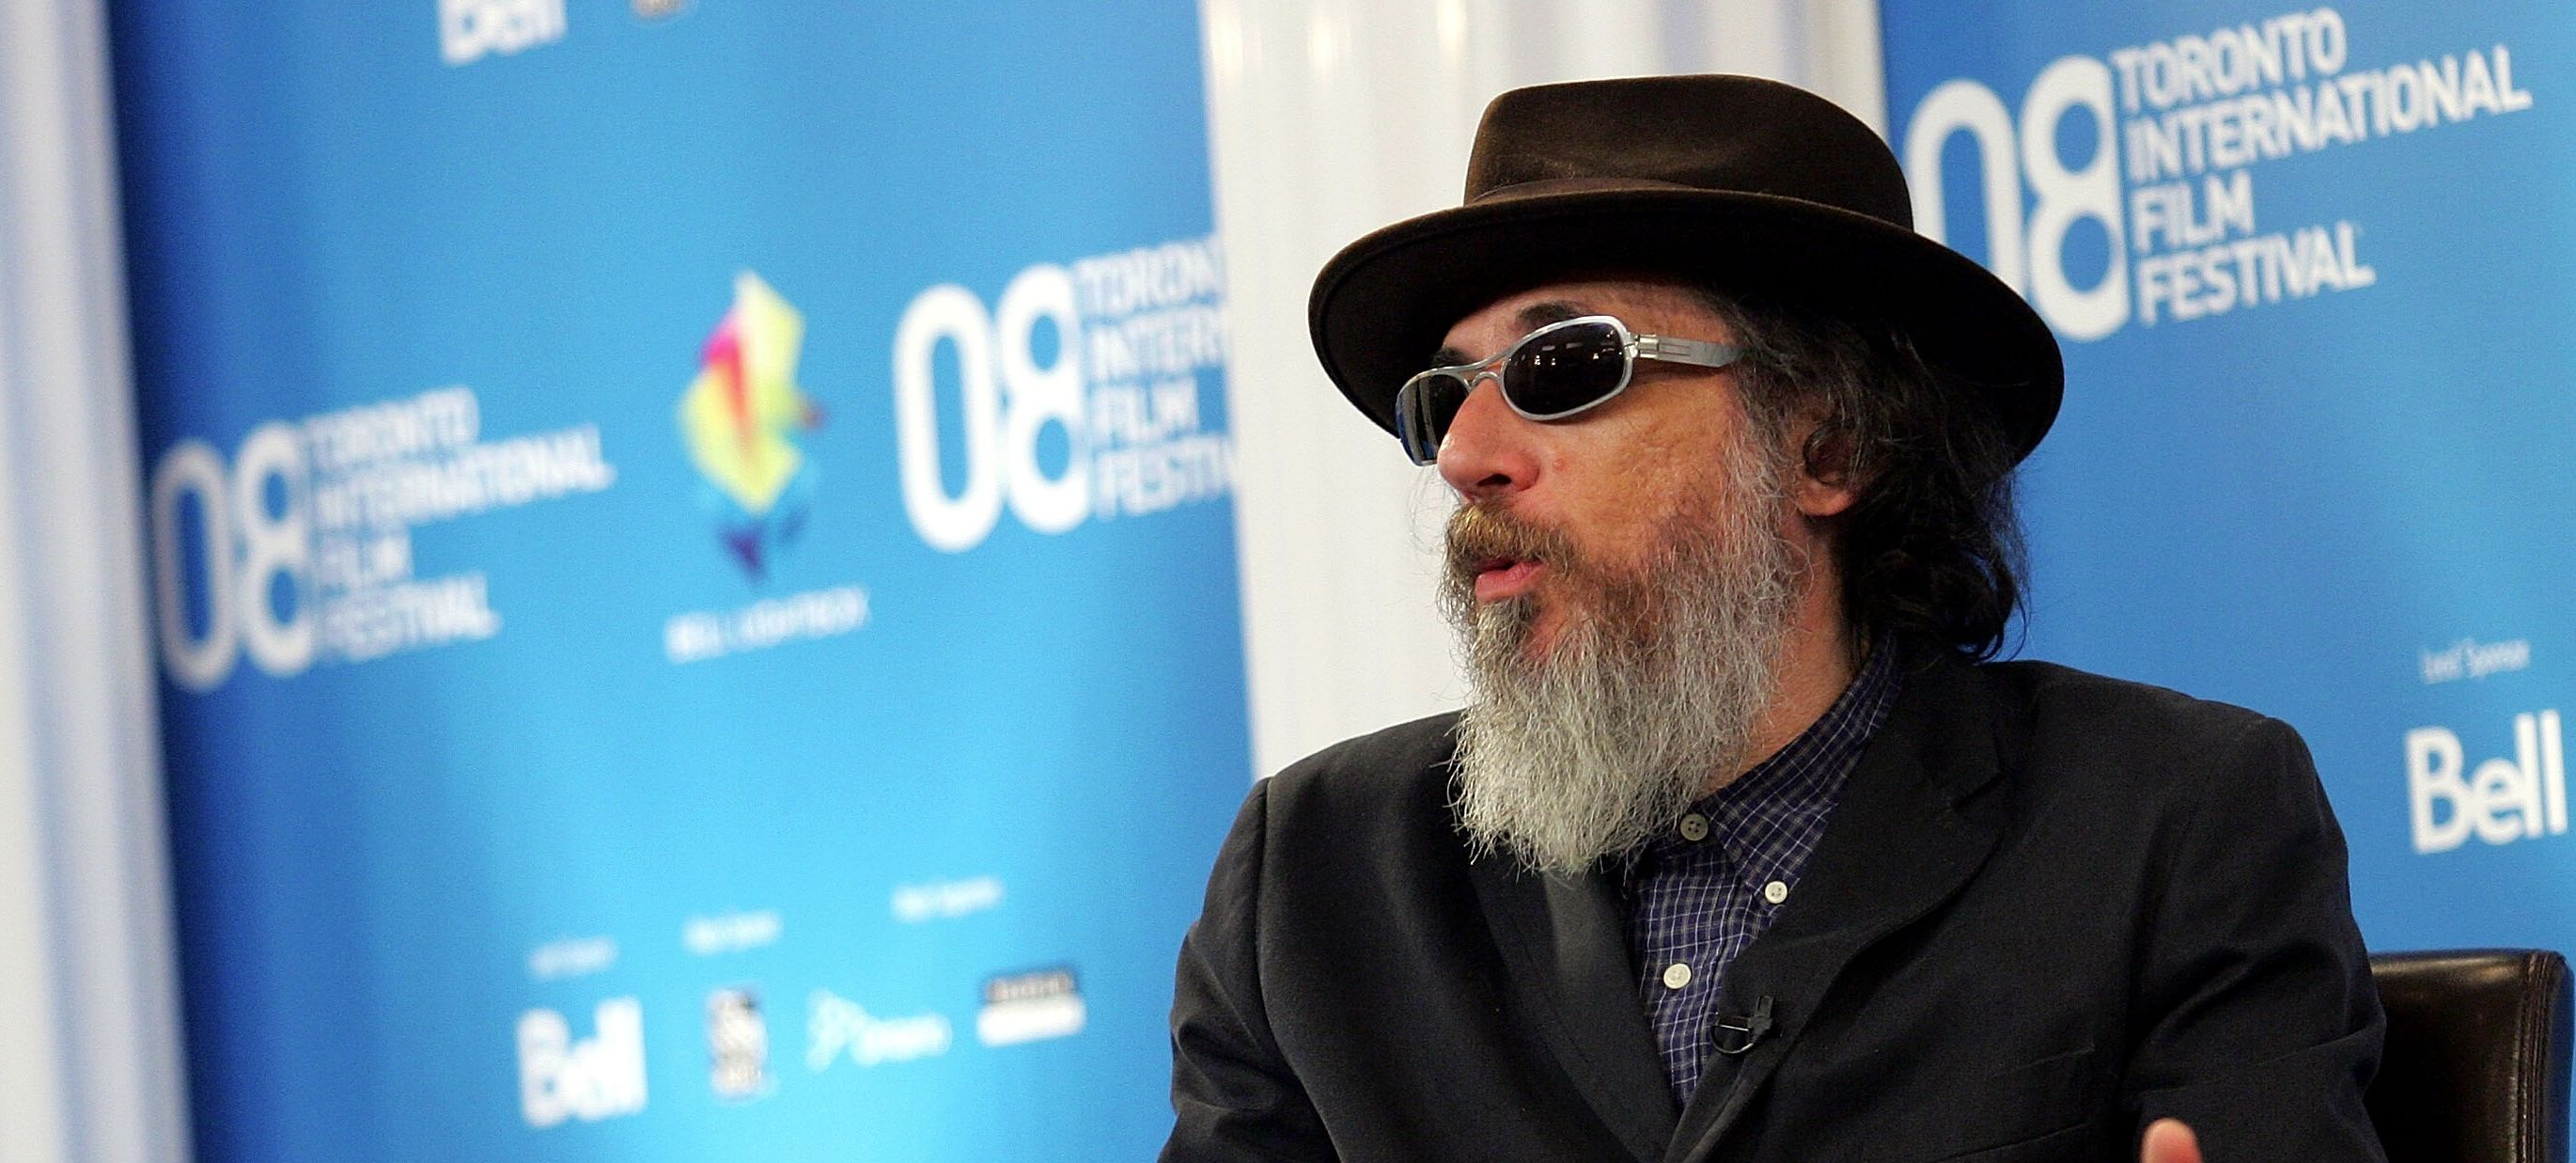 'Curb' Director Larry Charles Feared Getting Comfortable, Now He's Swapping Jokes With ISIS